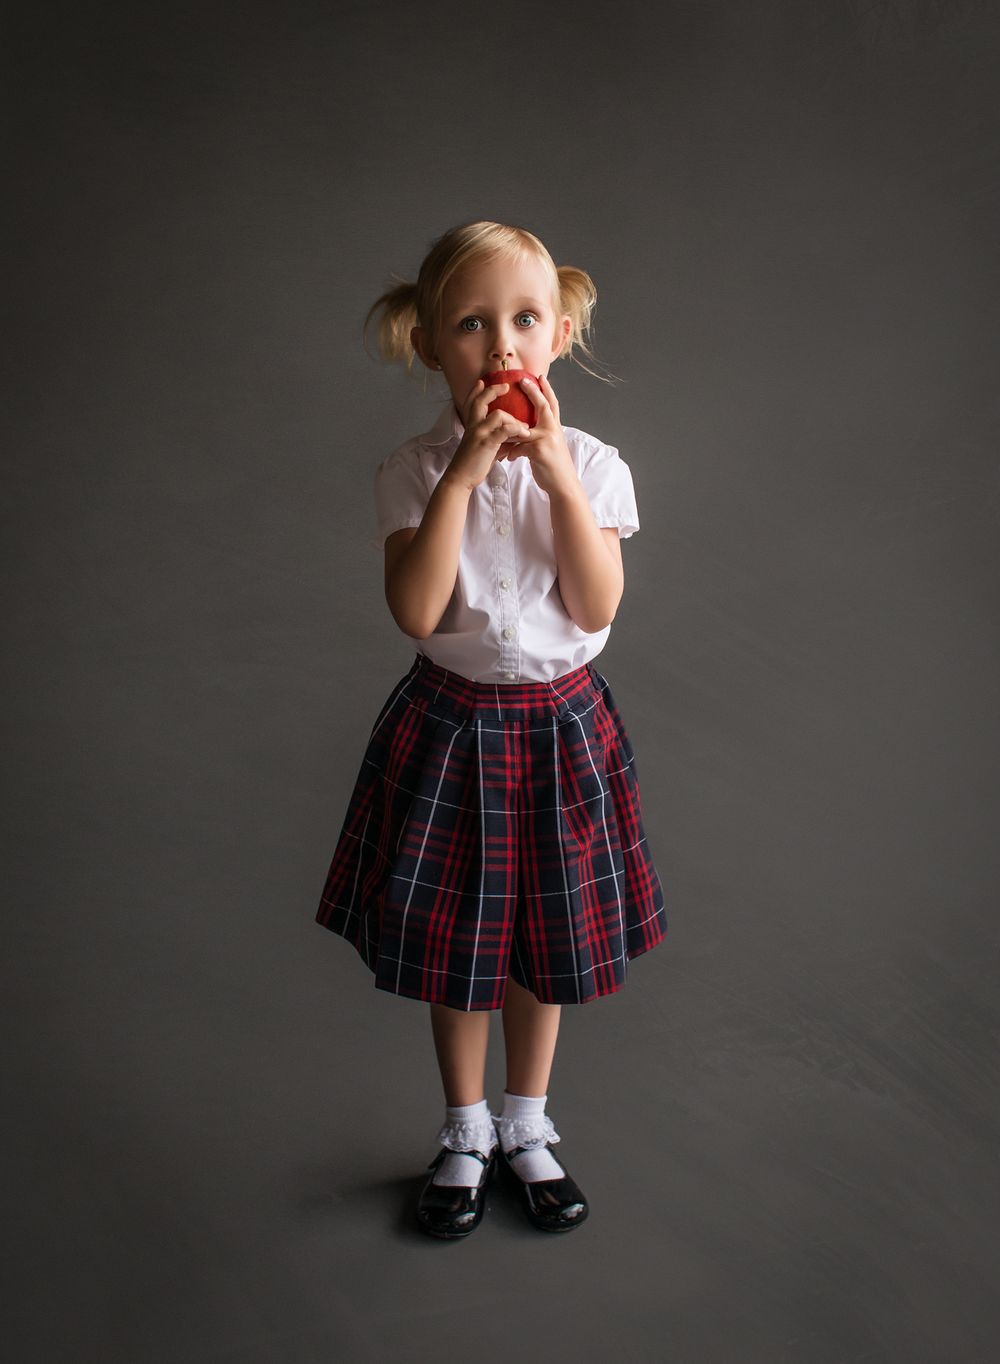 09 back to school girl child pre-k school uniform garage studio savage seamless thunder gray edmond ok photographer oklahoma city (3).png